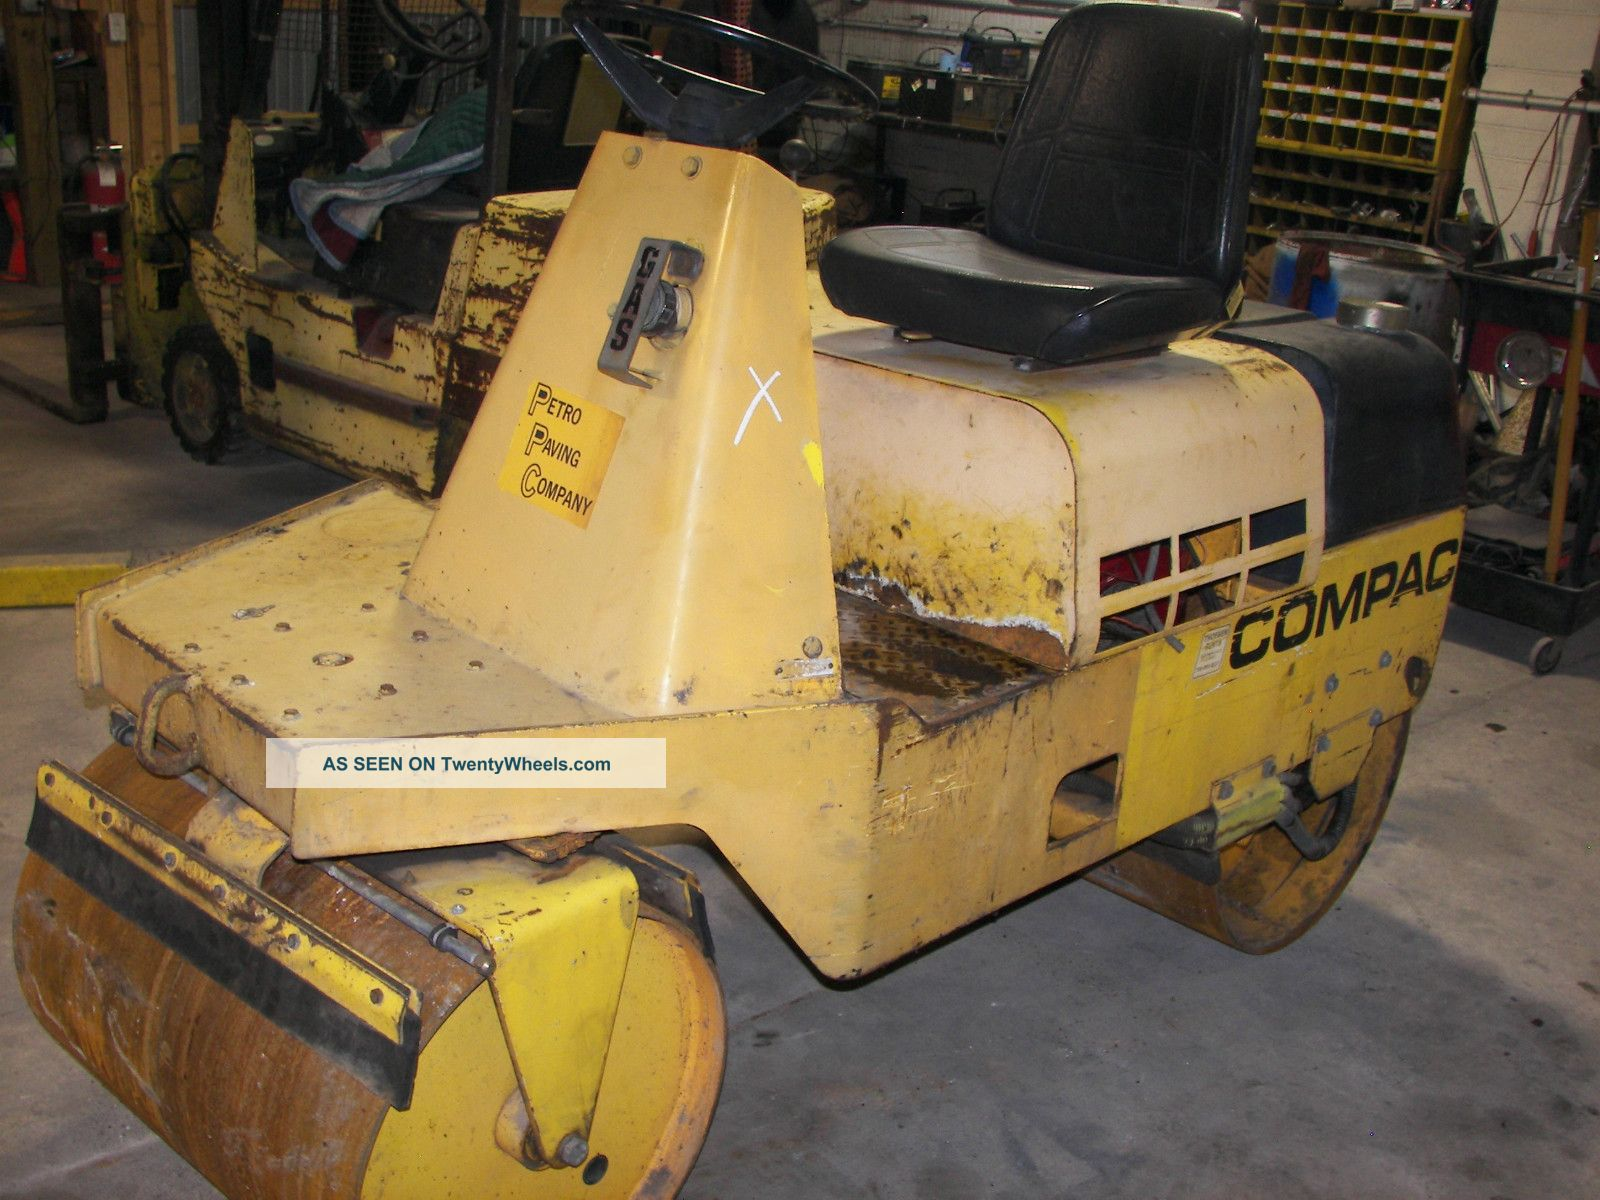 Compac Double Smooth Roller Gas Vibratory Newer Engine Indiana Compactors & Rollers - Riding photo